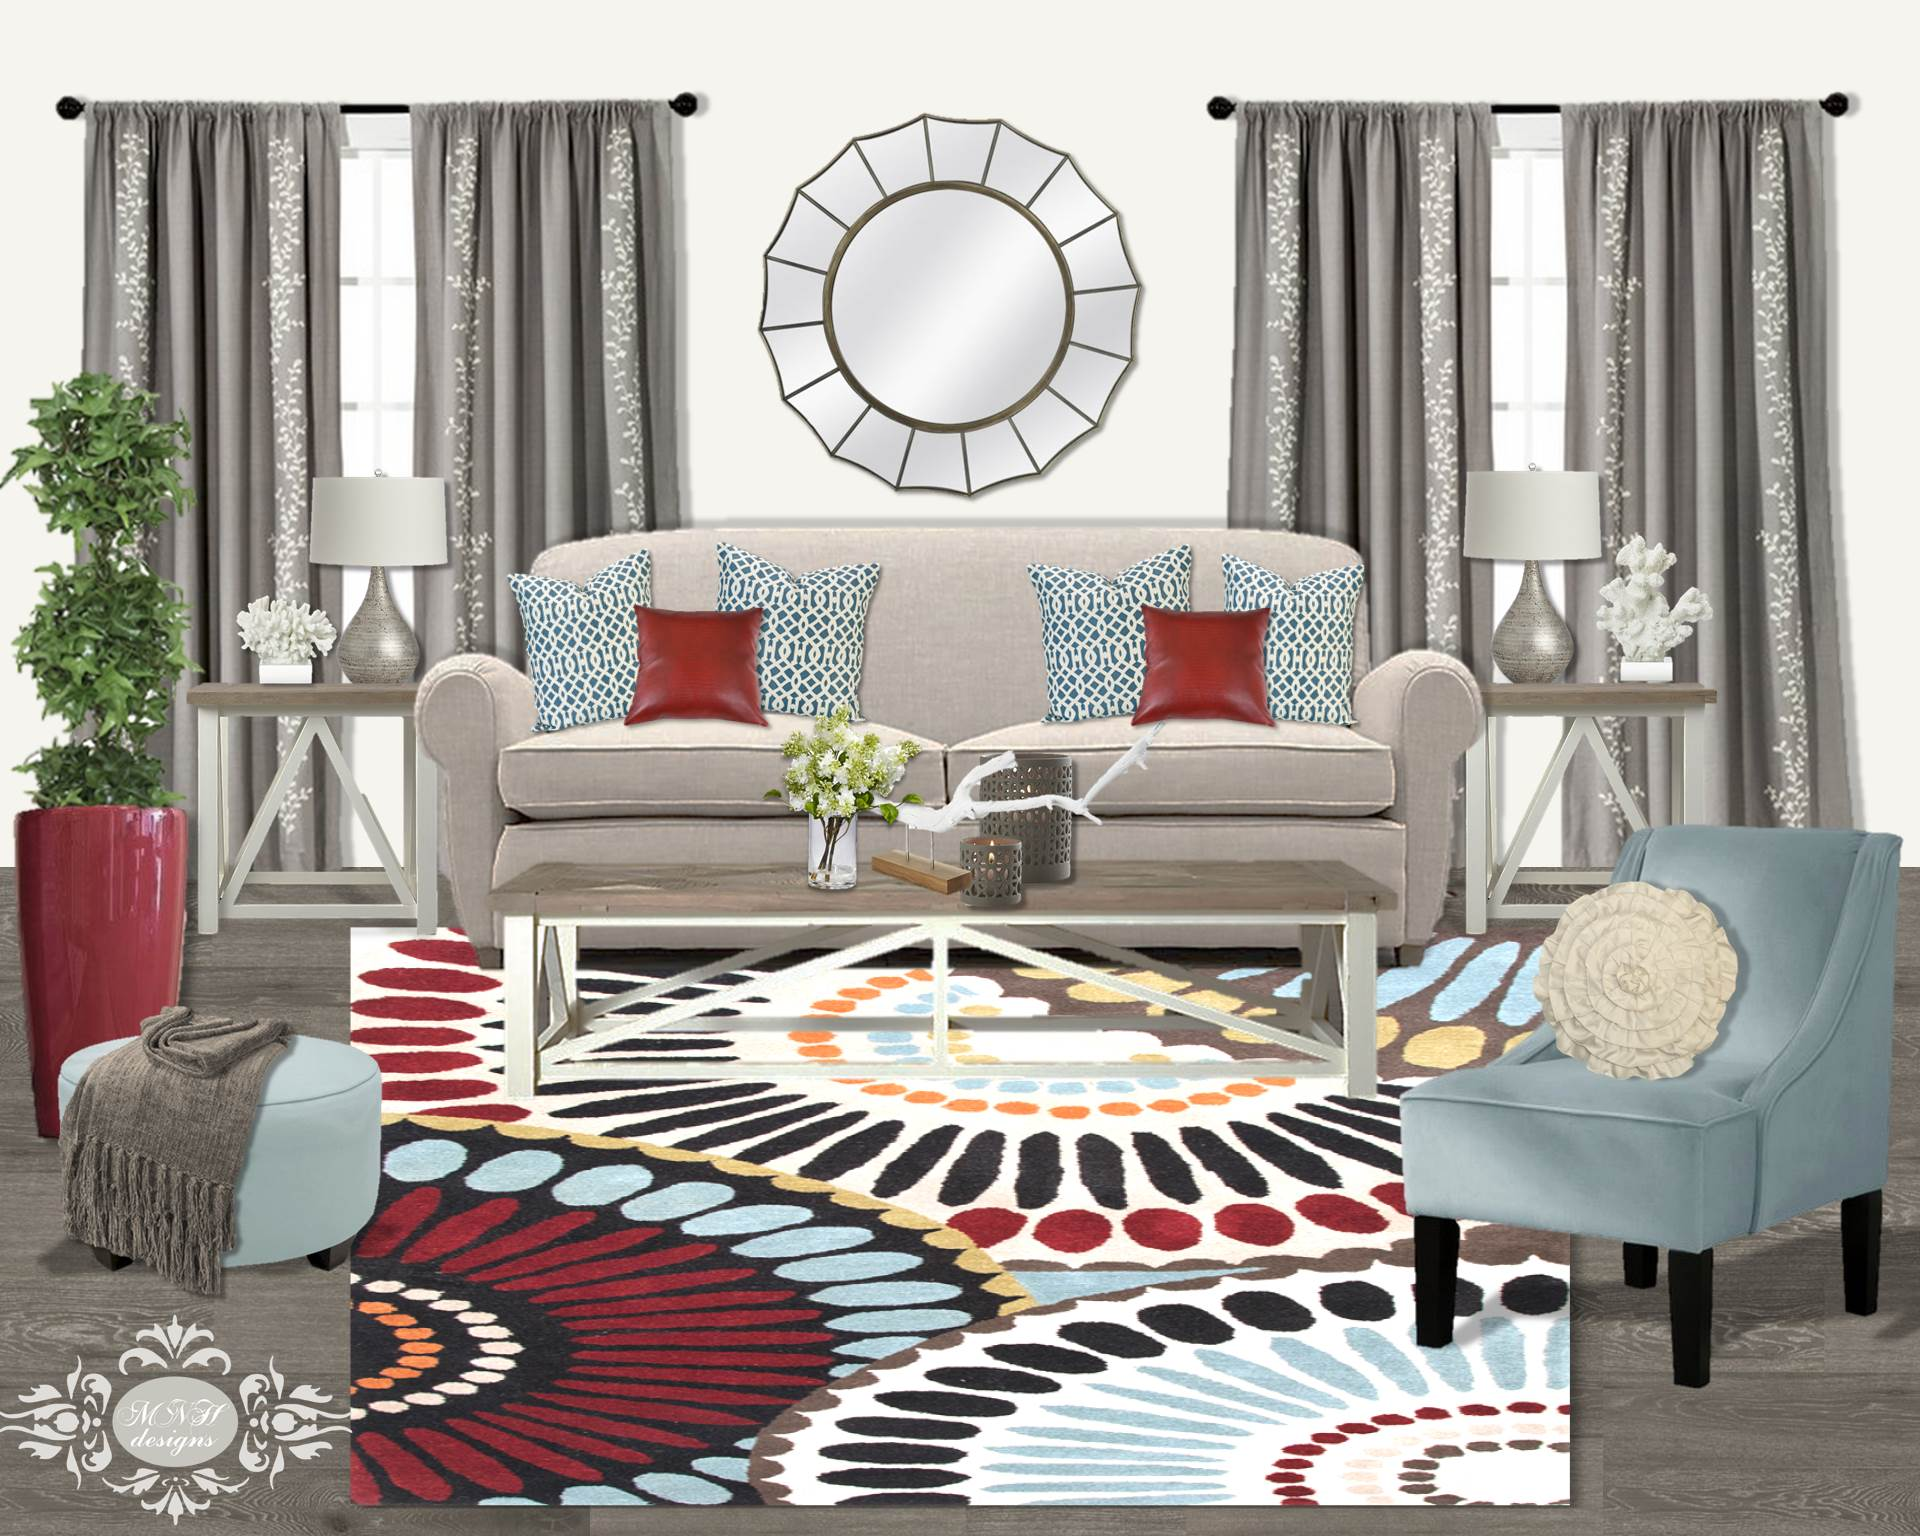 Neutral living room with pops of color mnh designs for Neutral decor with pops of color